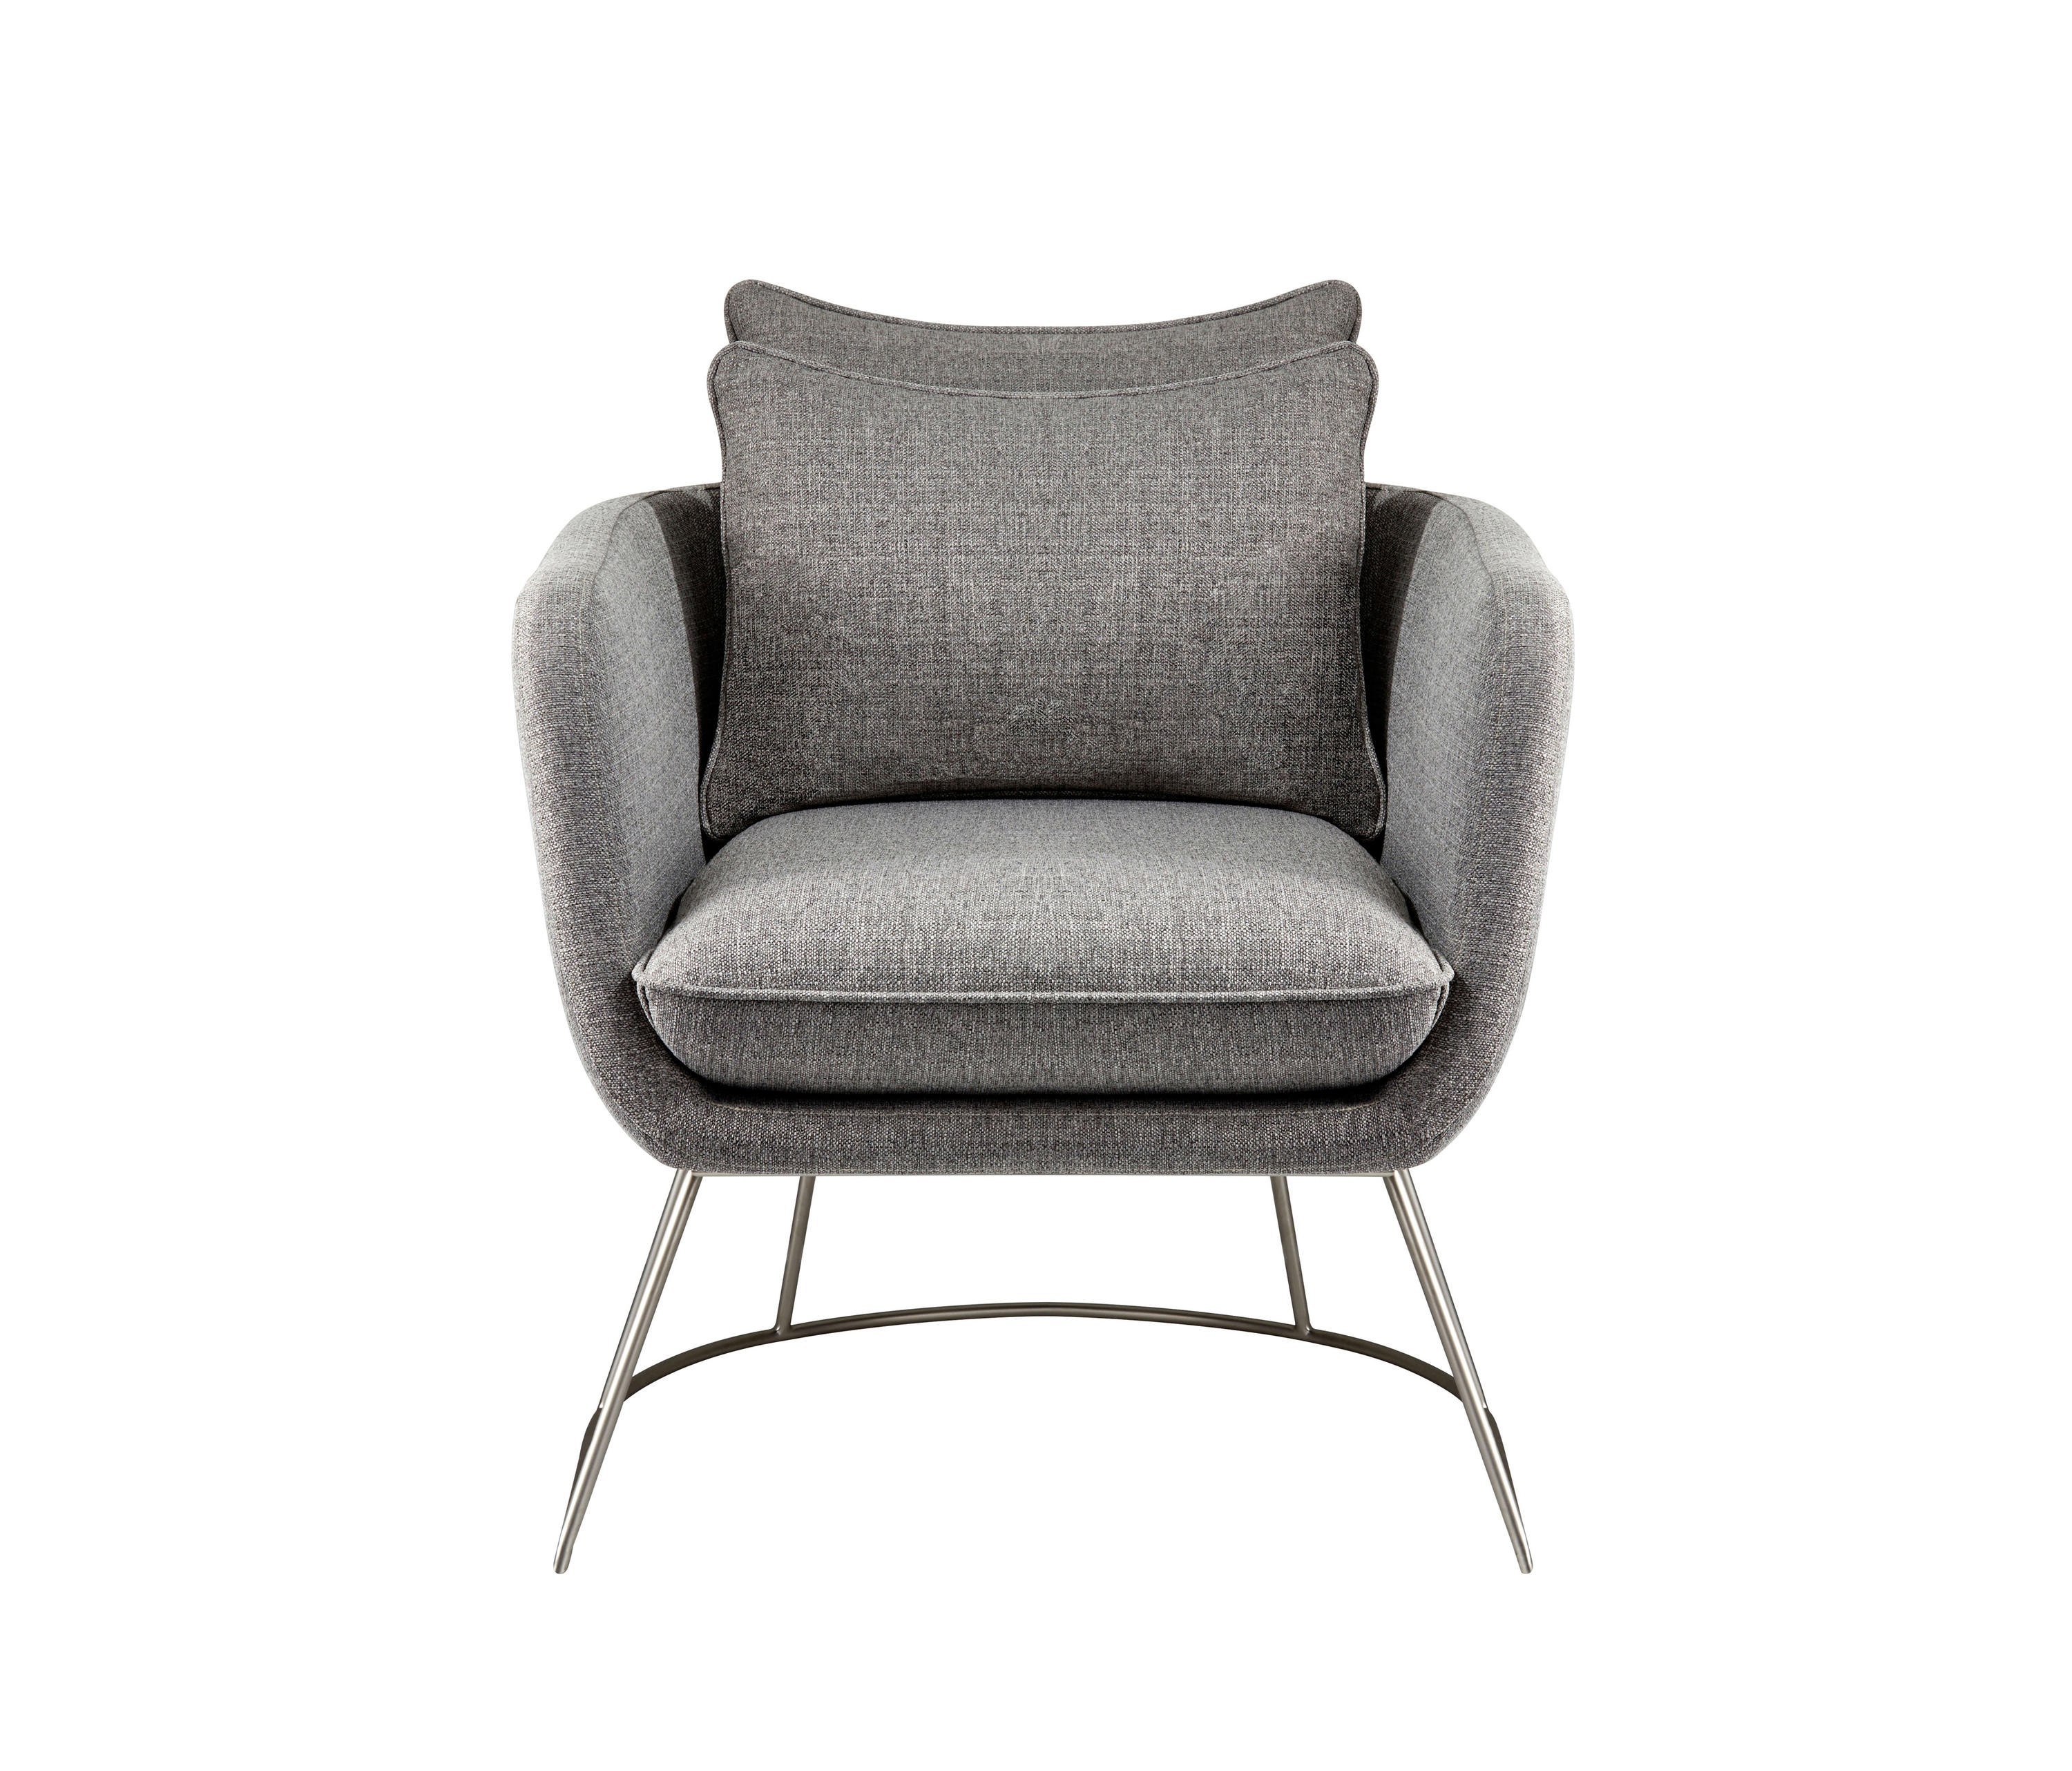 ... Stanley Chair by ADS360 | Armchairs ...  sc 1 st  Architonic & STANLEY CHAIR - Armchairs from ADS360 | Architonic